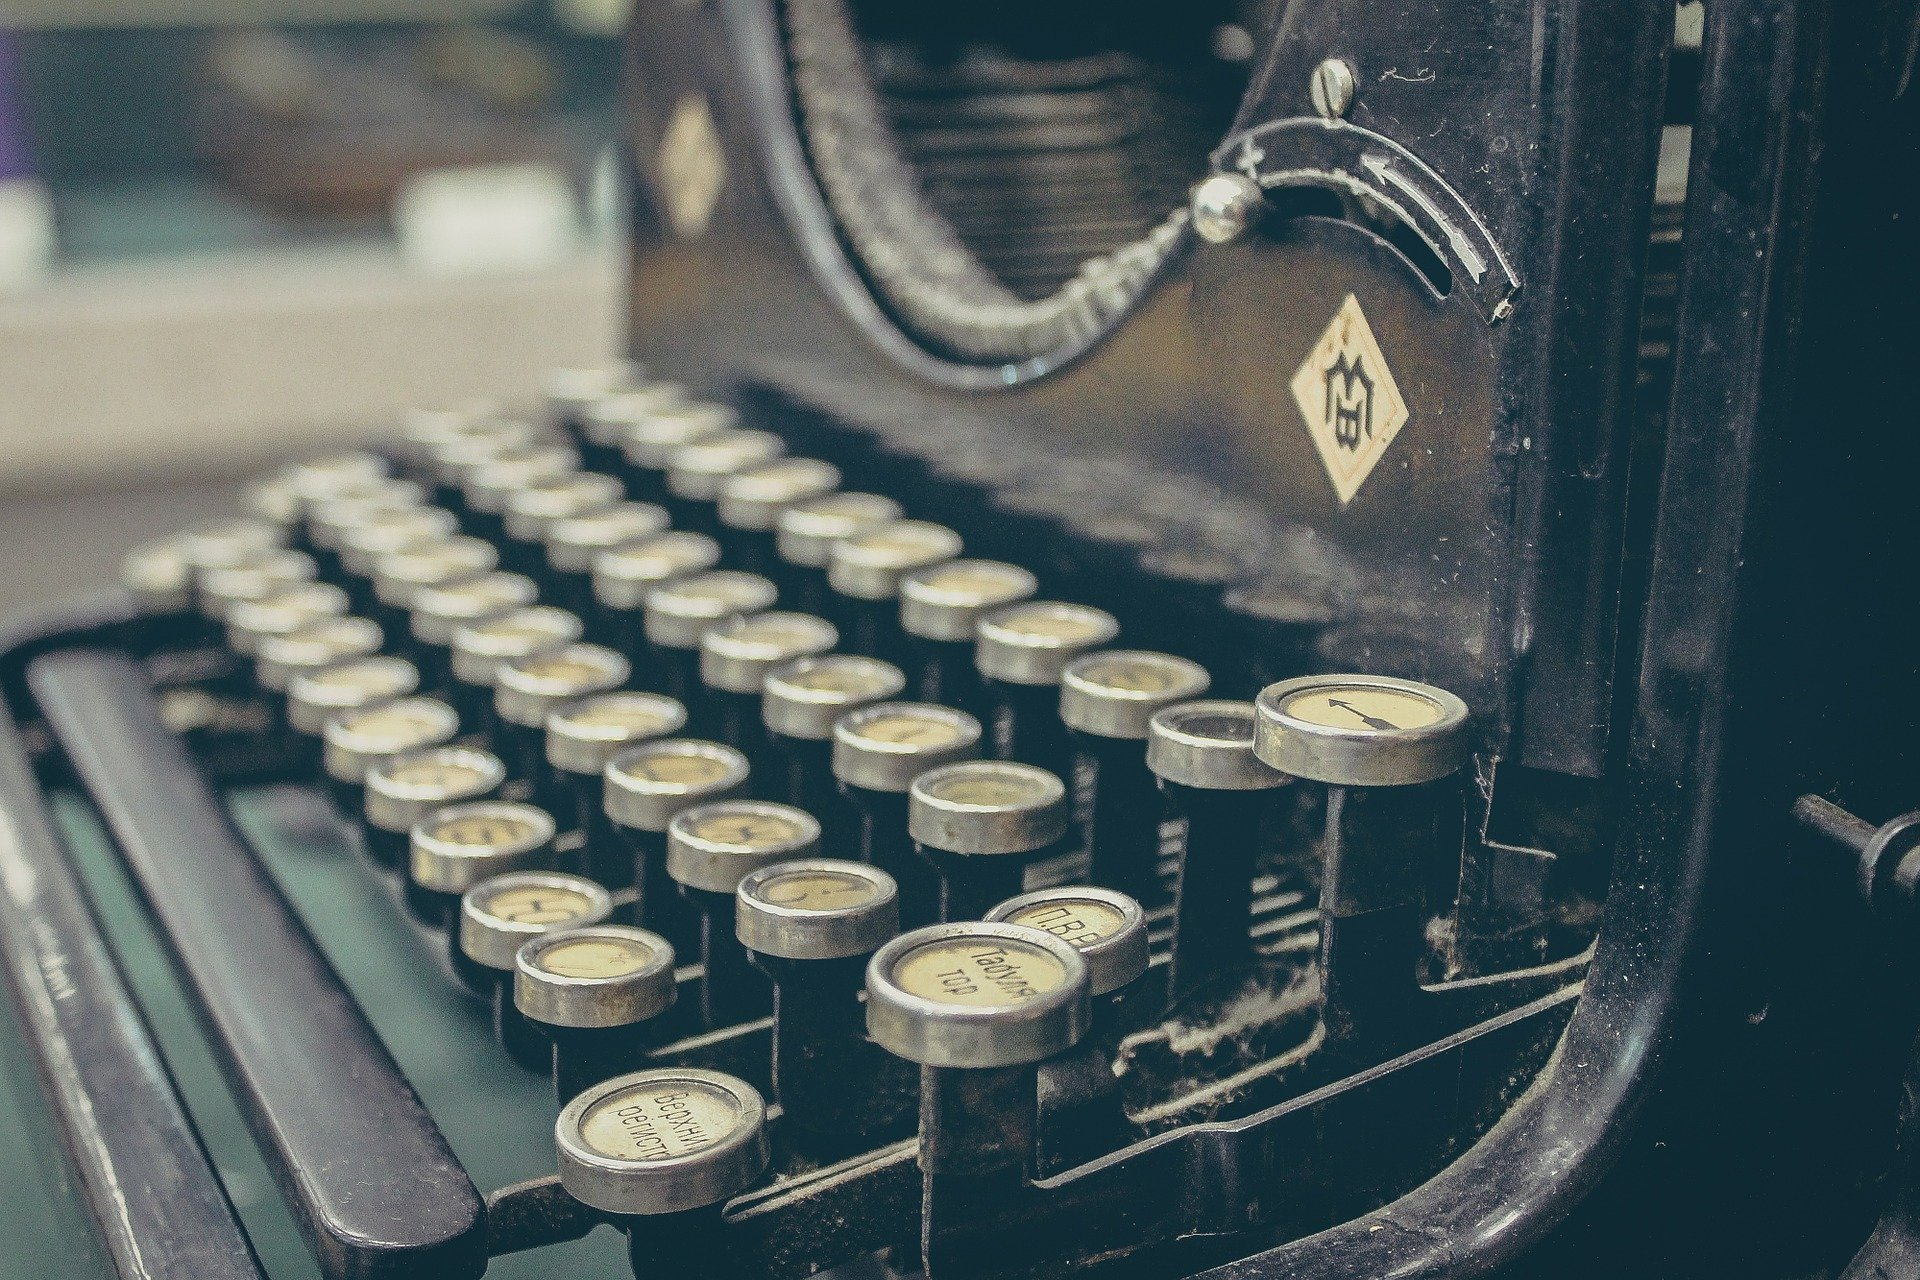 Copywriting on a typewriter